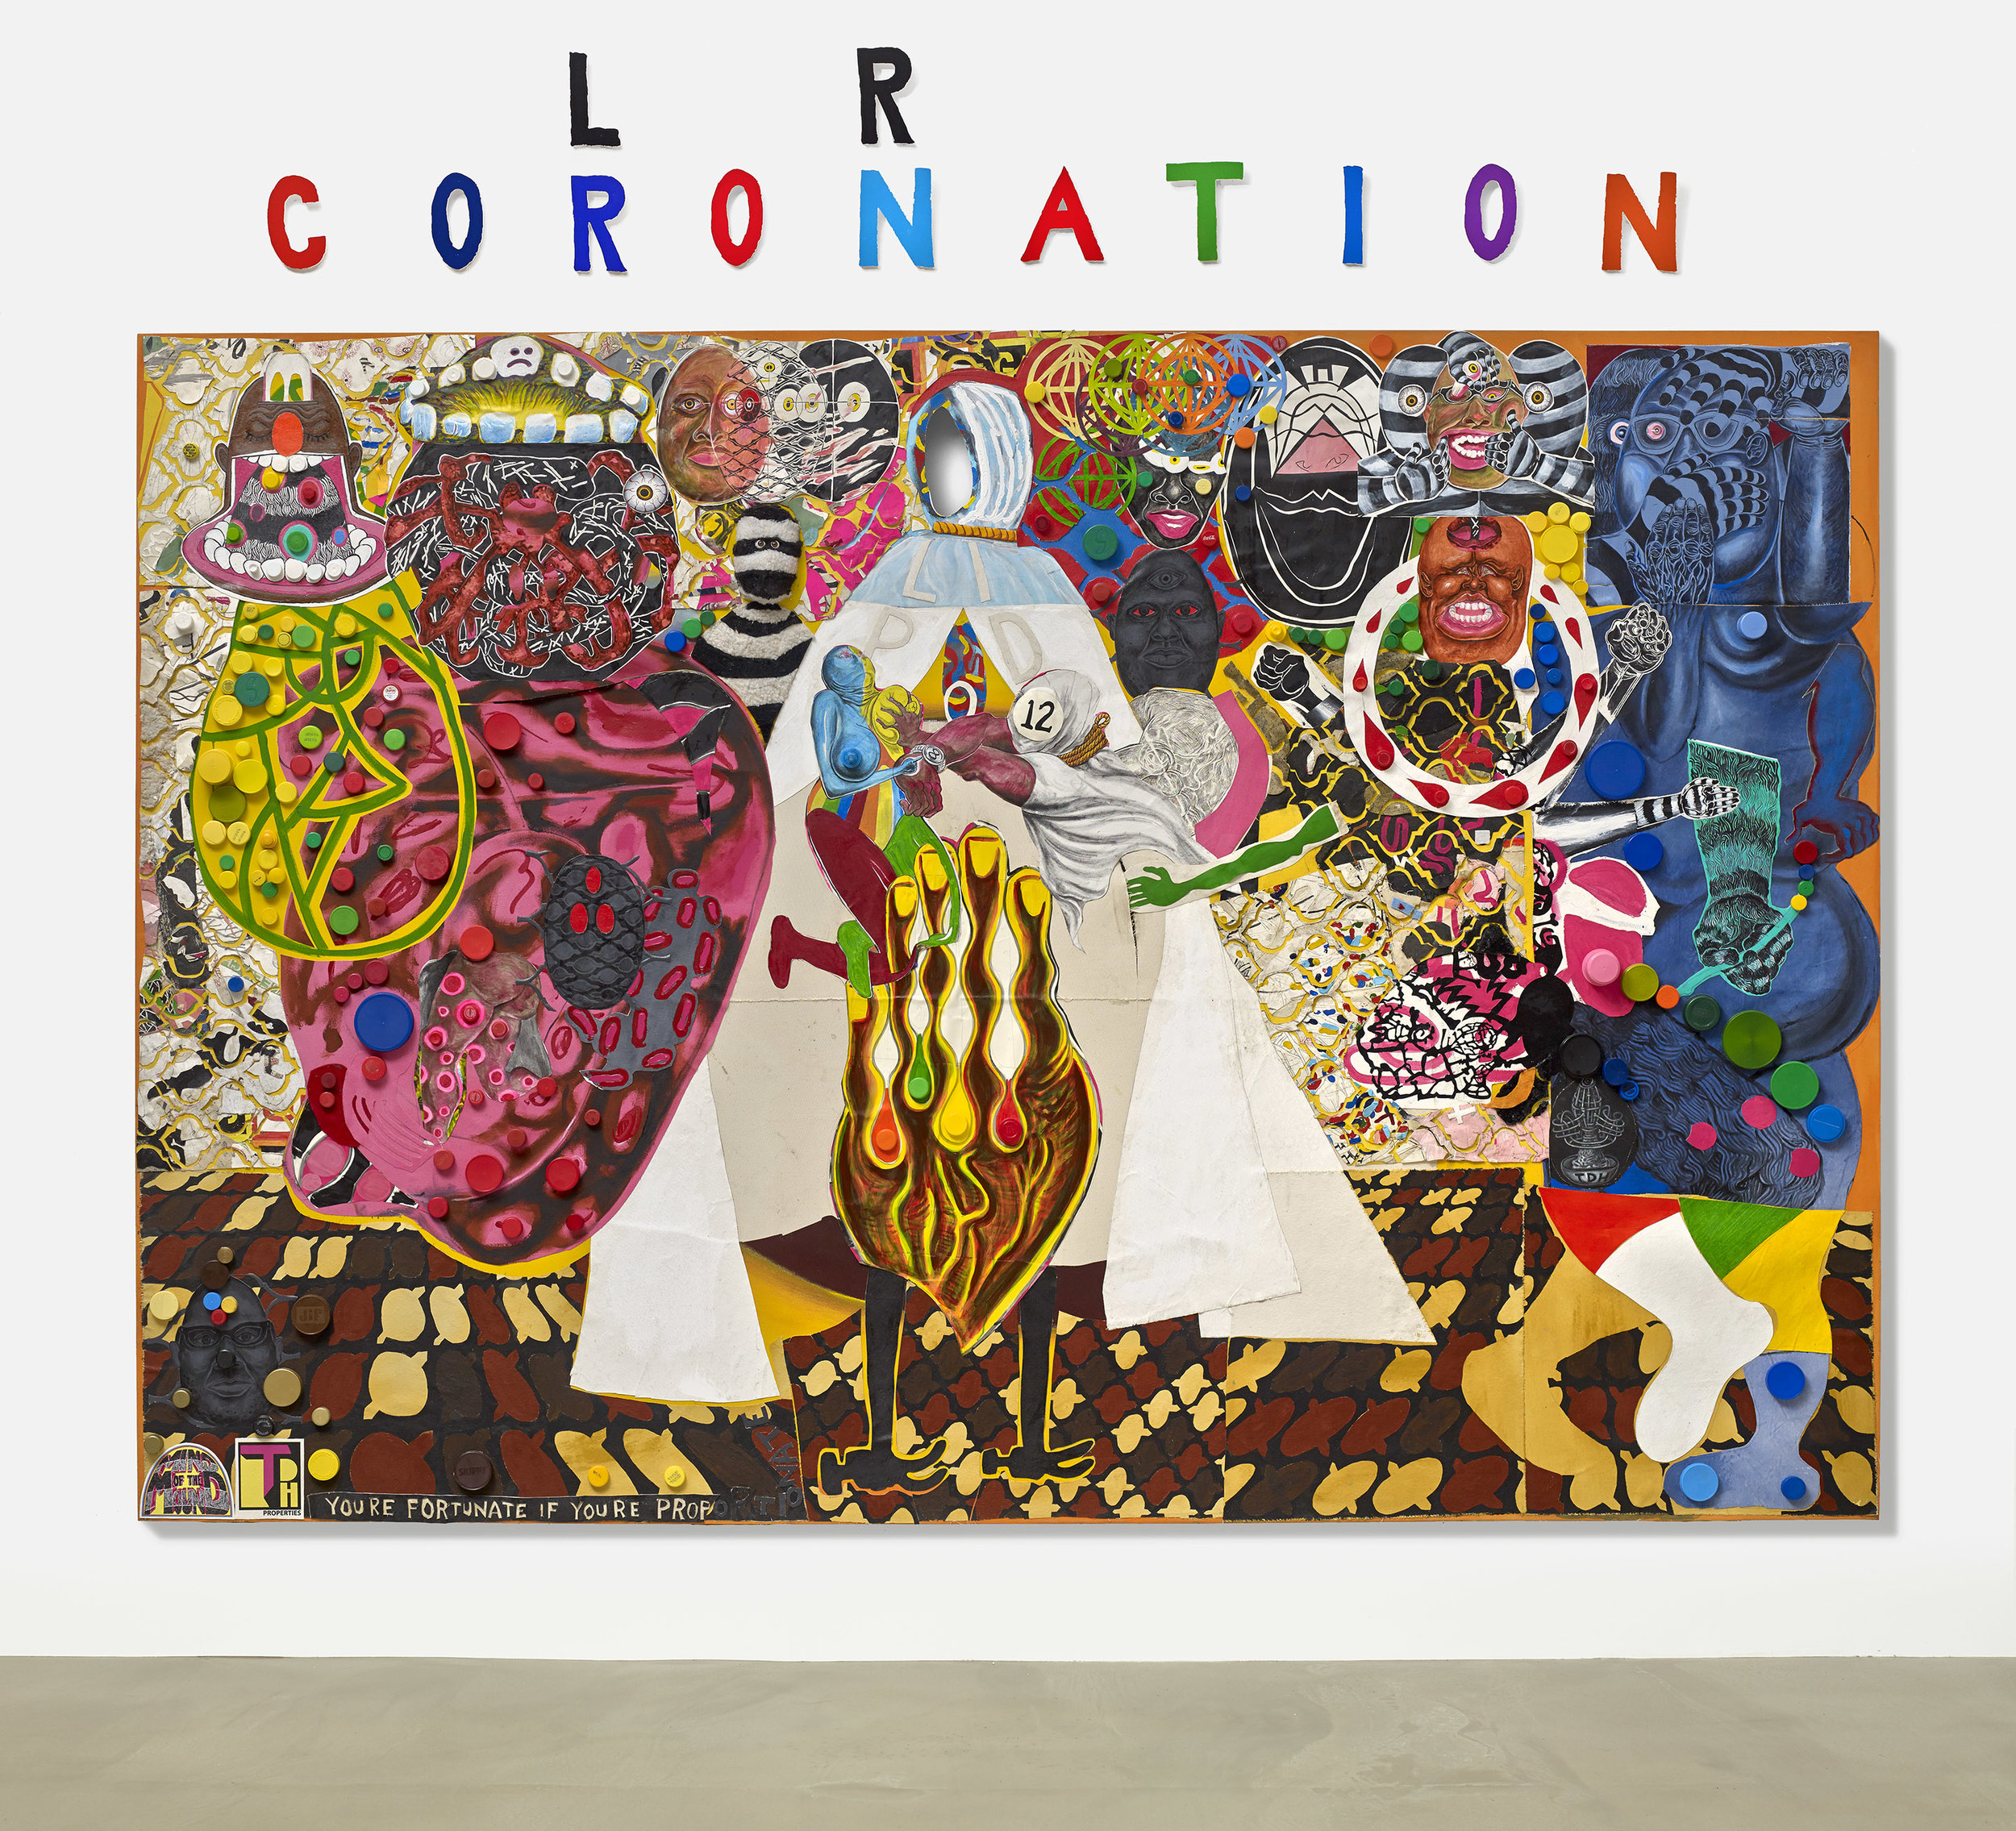 Trenton Doyle Hancock,  Coloration Coronation , 2016, acrylic and mixed media on canvas, 90 x 132 in.Image courtesy of the Artist and James Cohan, New York